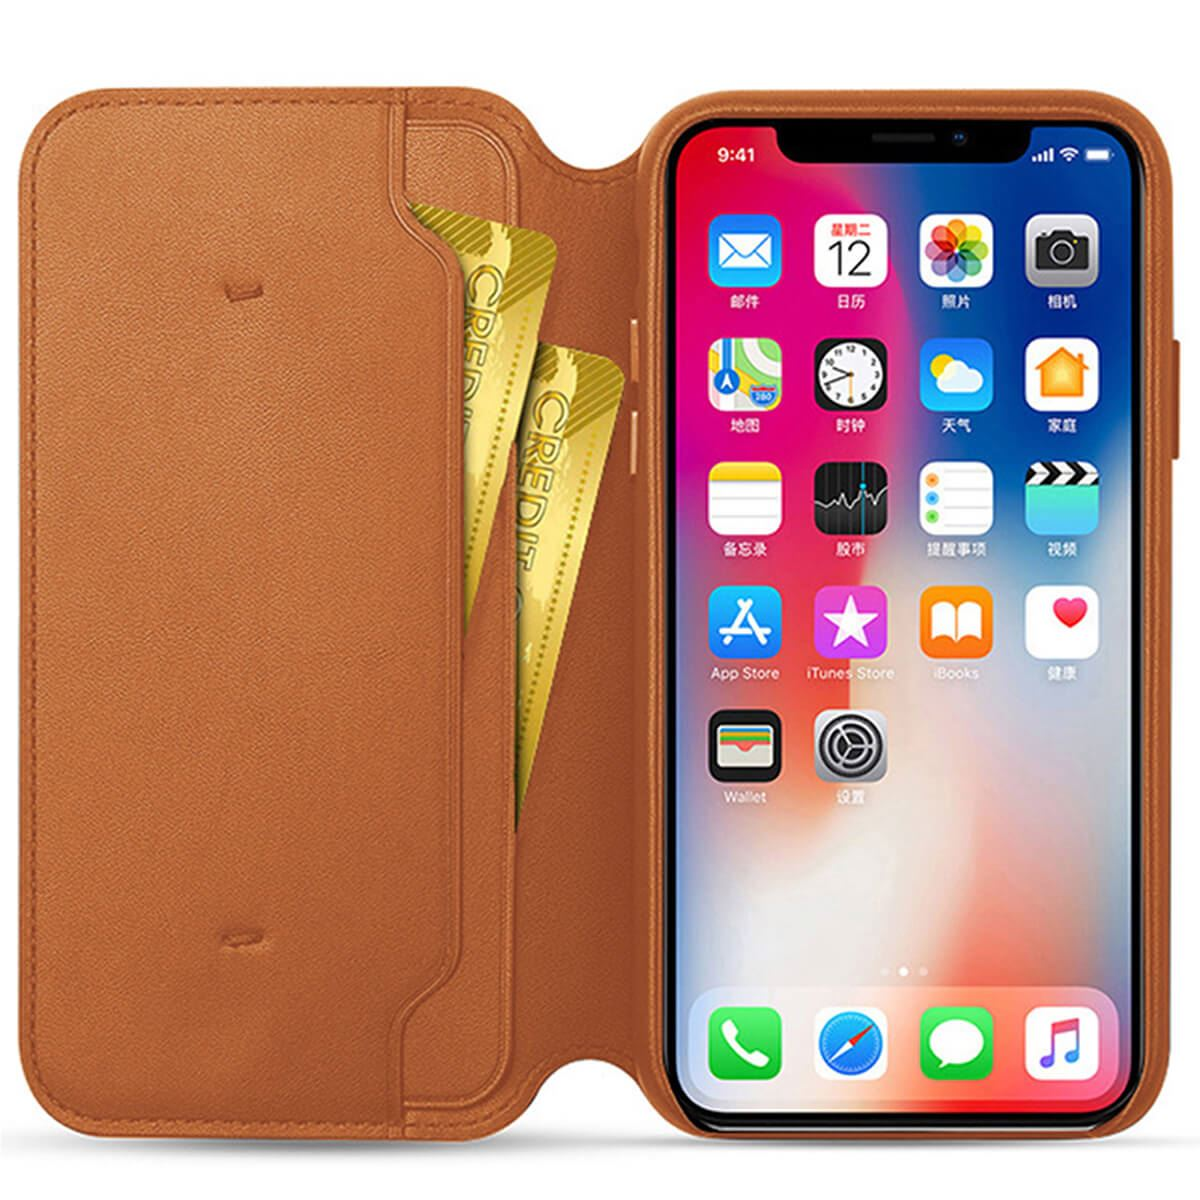 Genuine-Leather-Folio-Flip-Wallet-Case-Cover-For-Apple-iPhone-X-8-7-6S-6-Plus thumbnail 19